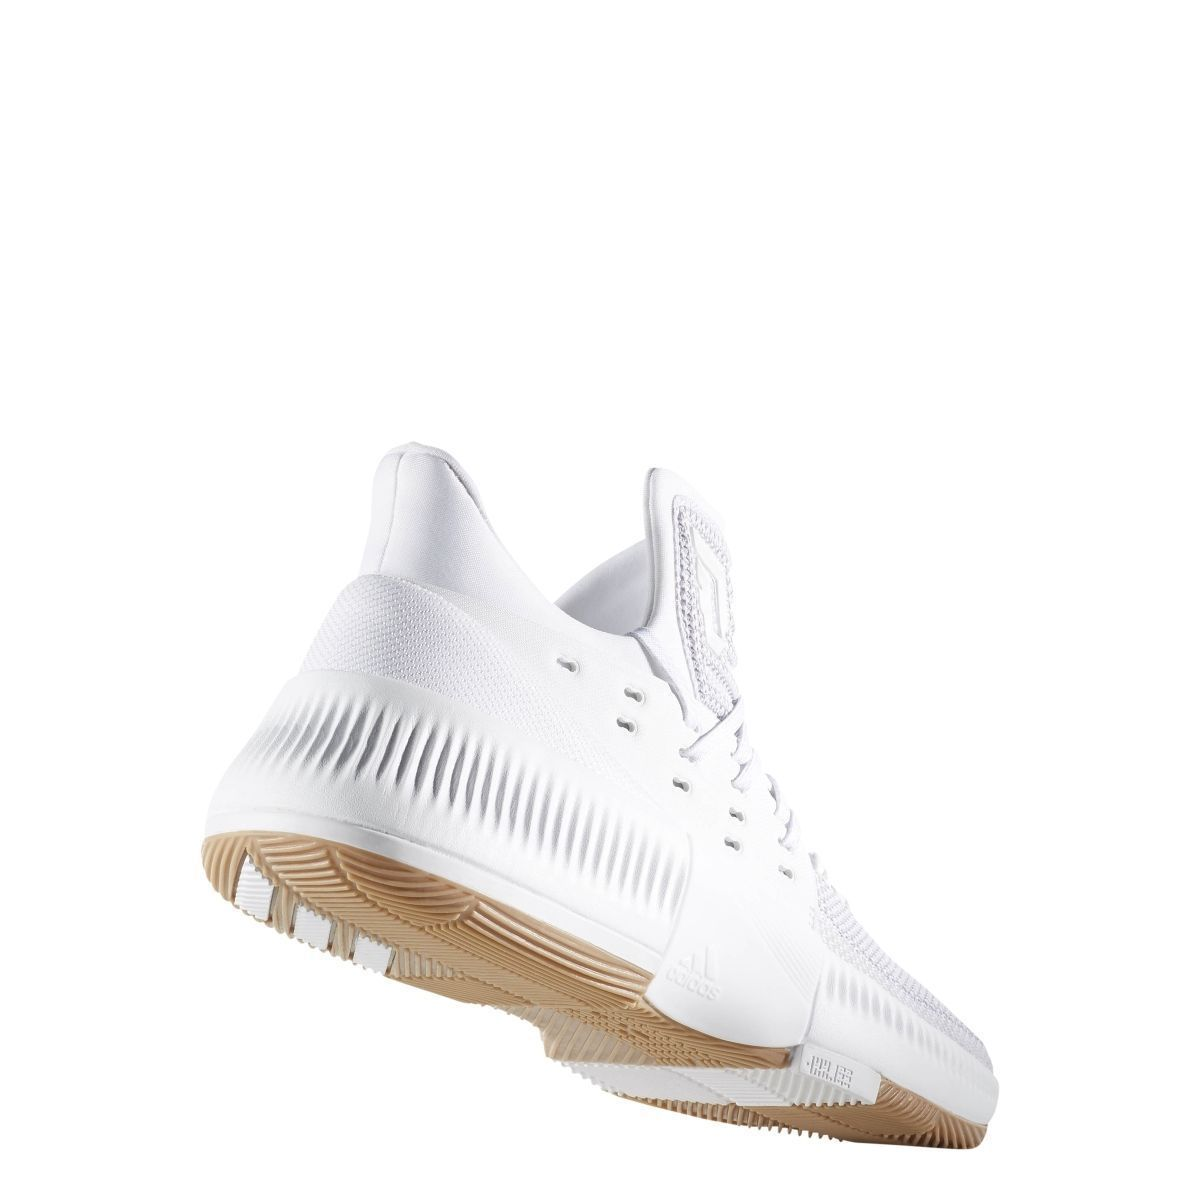 messieurs et mesdames diversified adidaillbaskeasiitems diversified mesdames ed paquet 1131a7